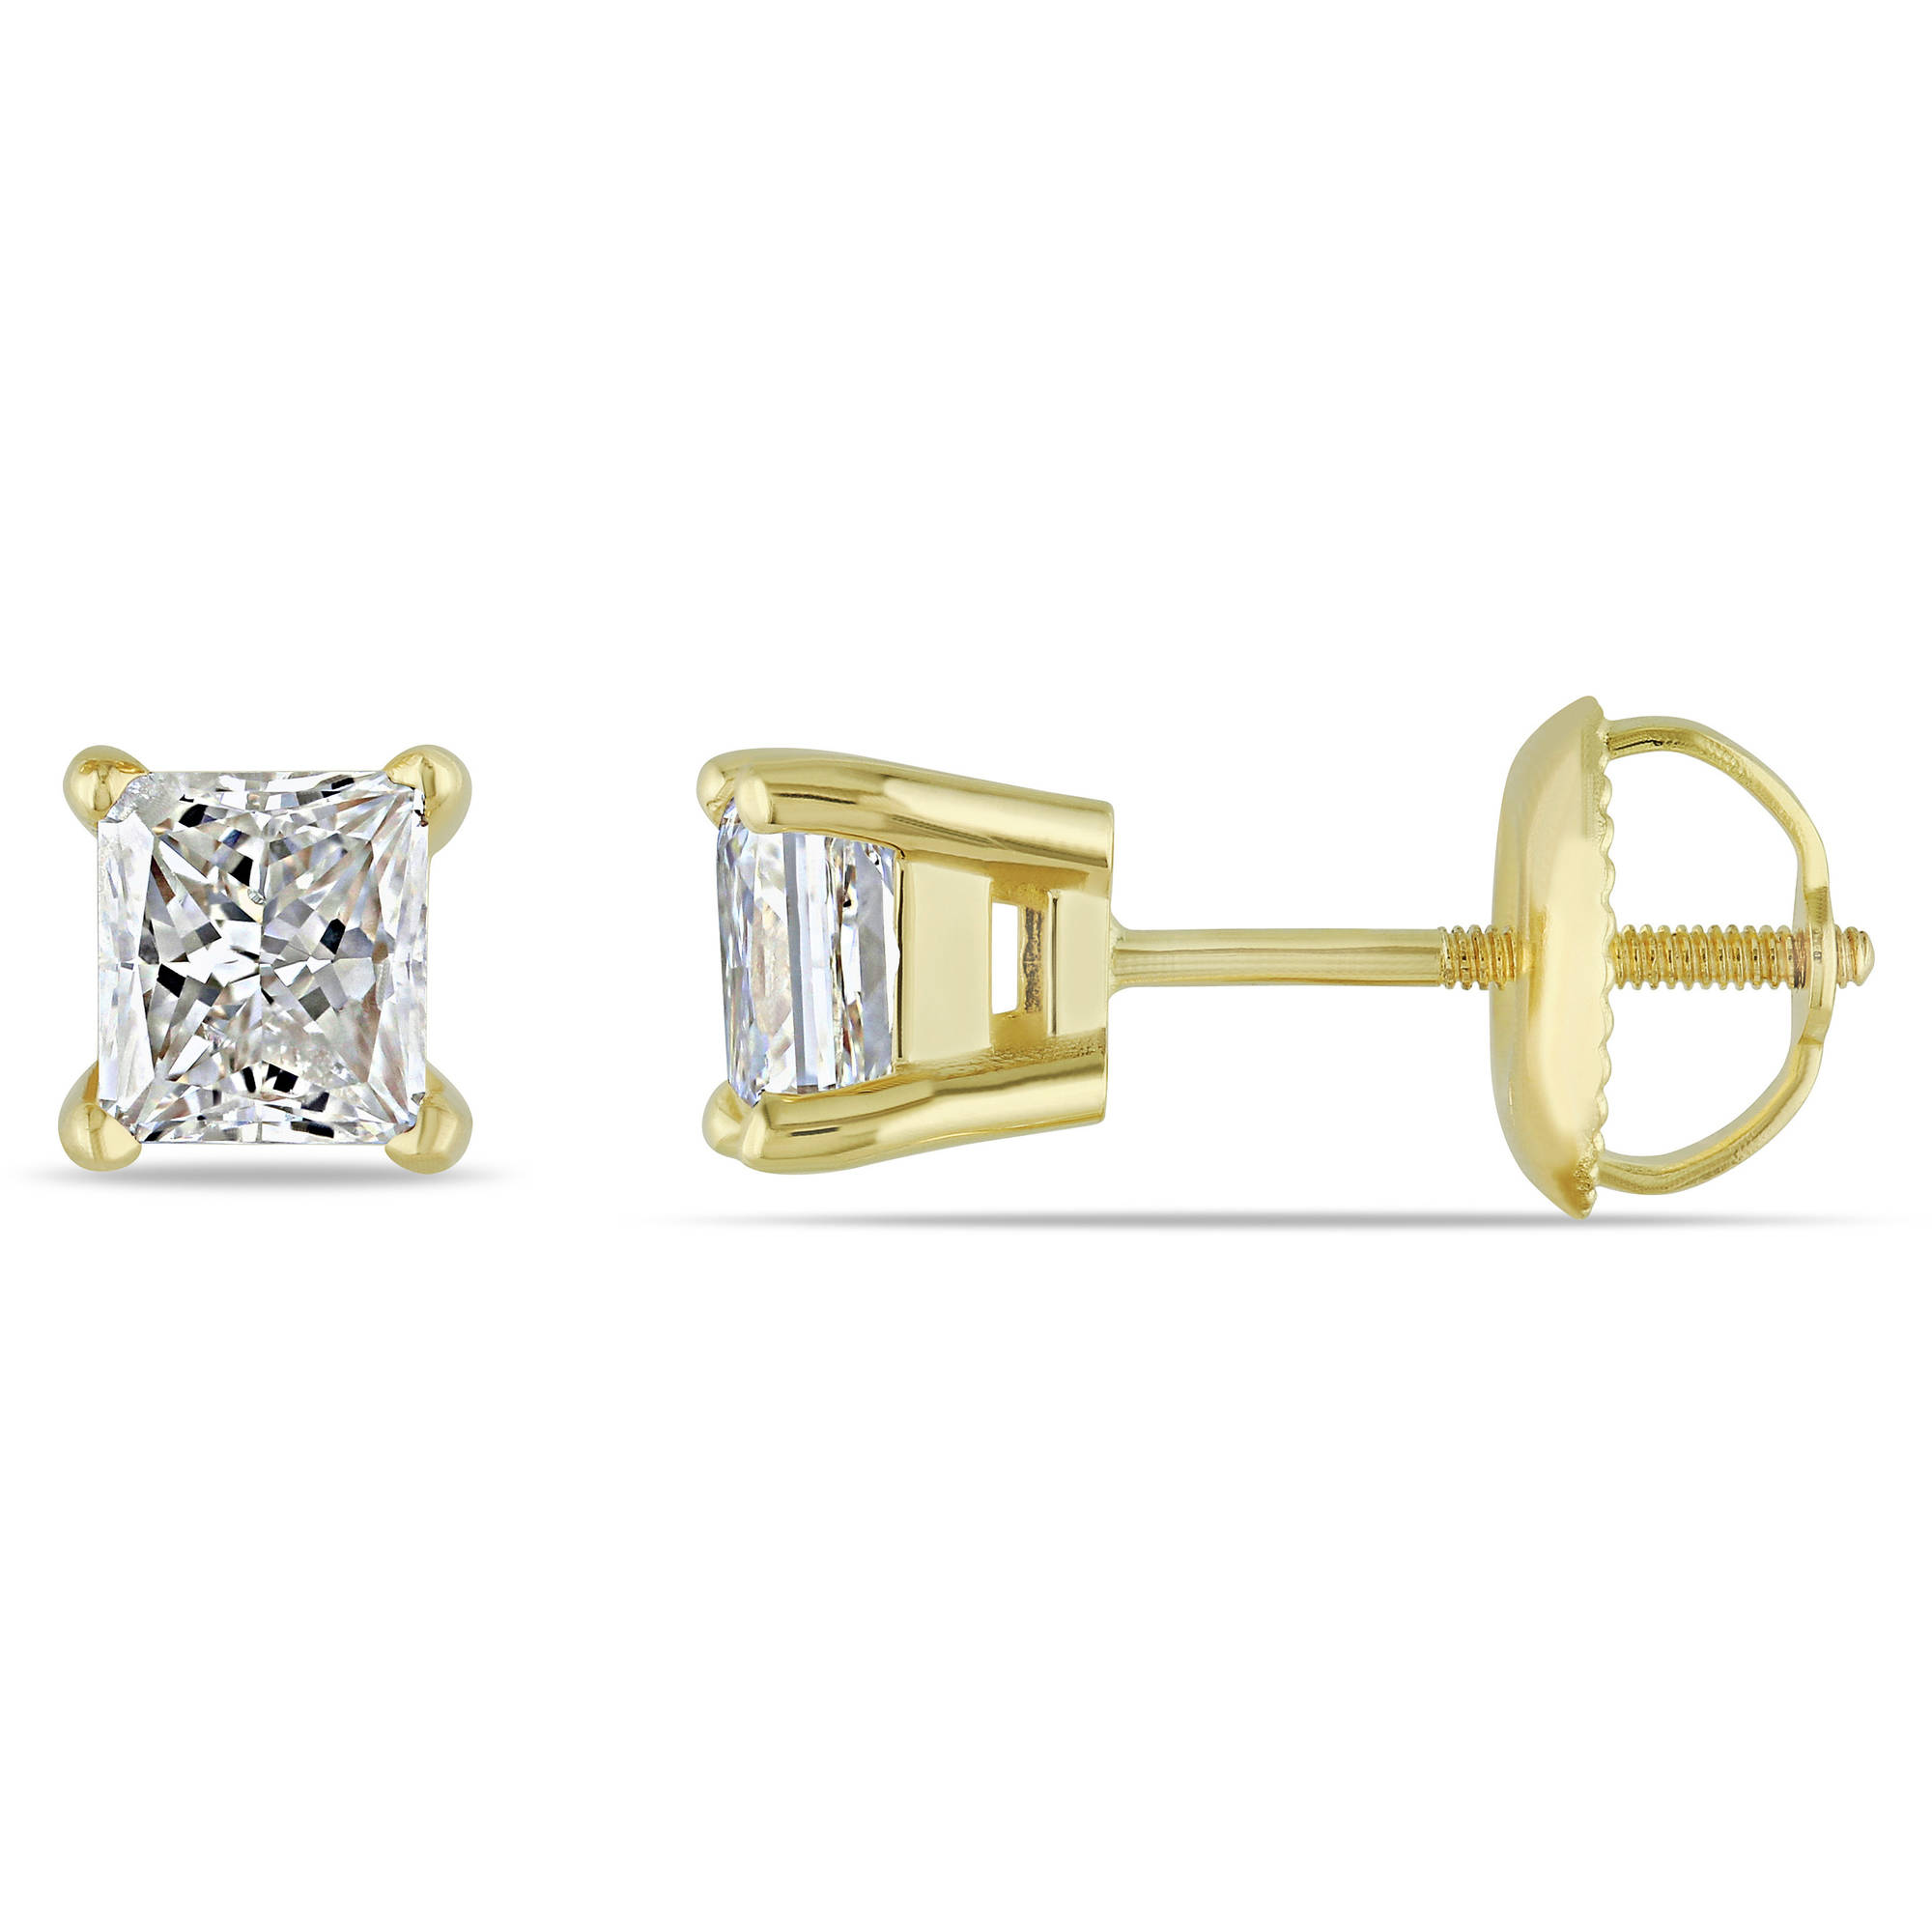 1 Carat T W Diamond 14kt Yellow Gold Stud Earrings Walmart